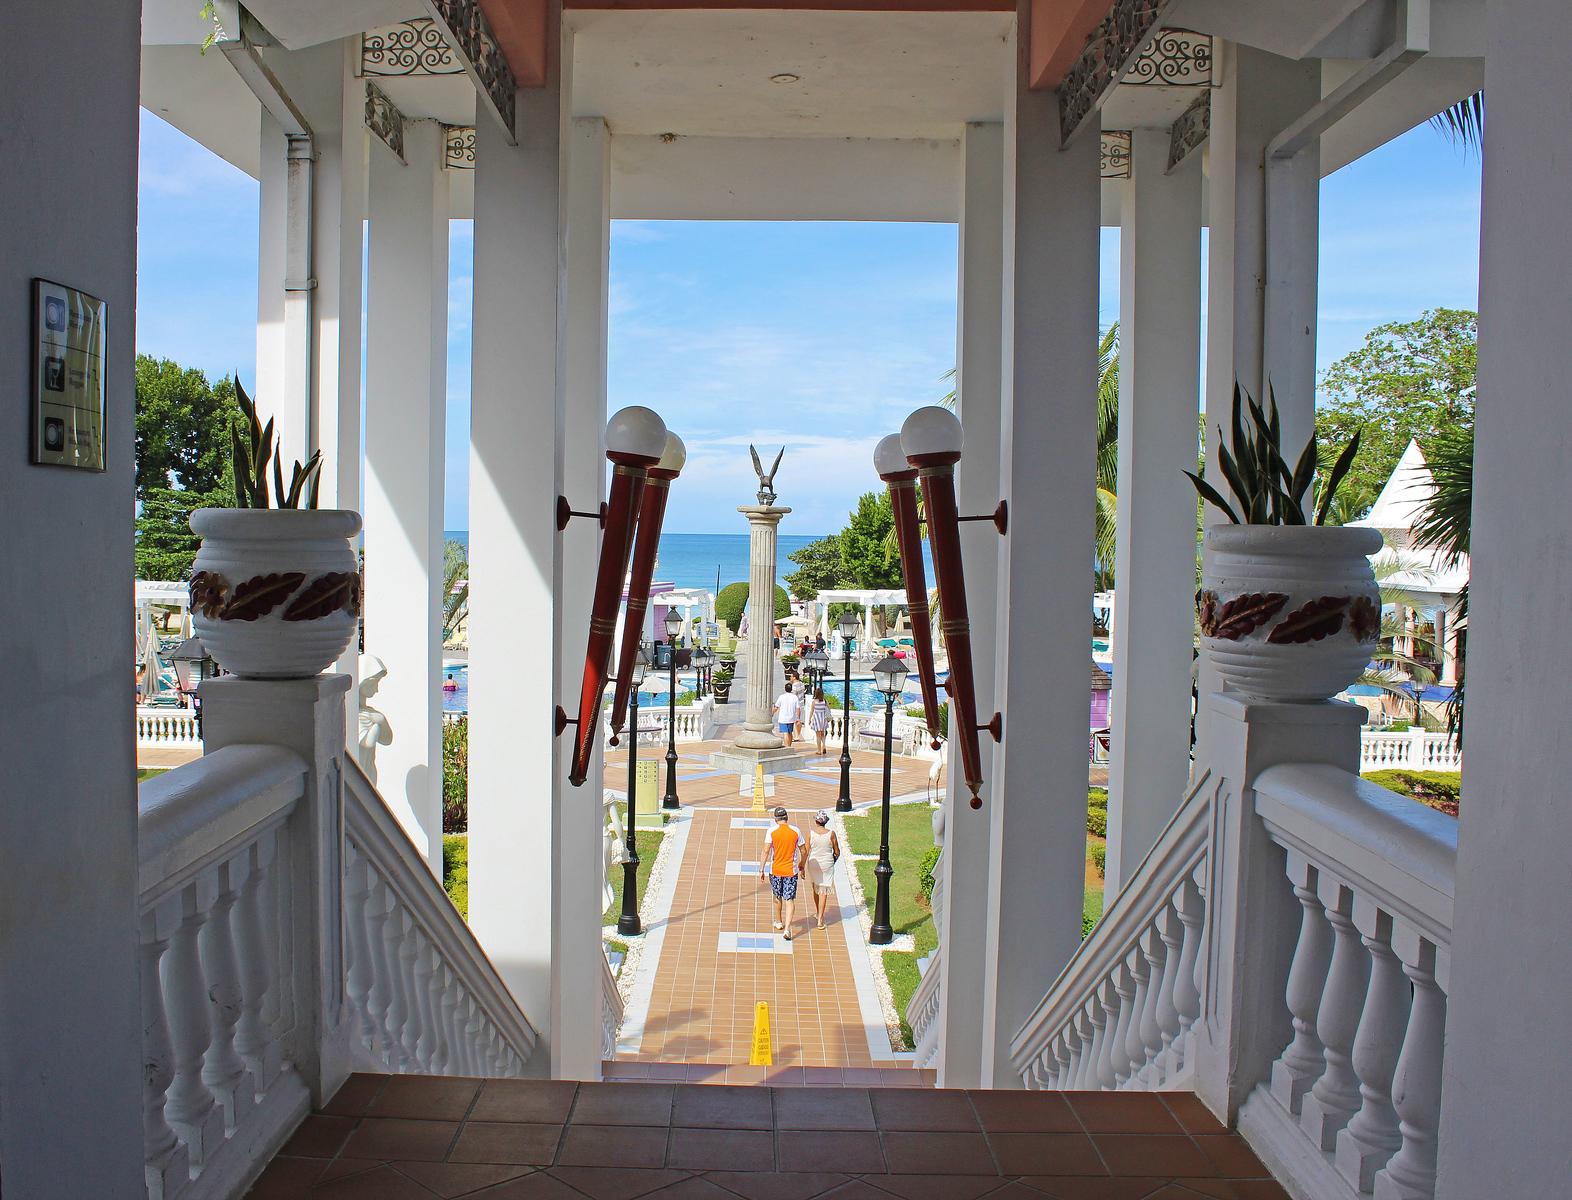 Riu Palace Tropical Bay Negril Jamaica: Steps leading down to the pools